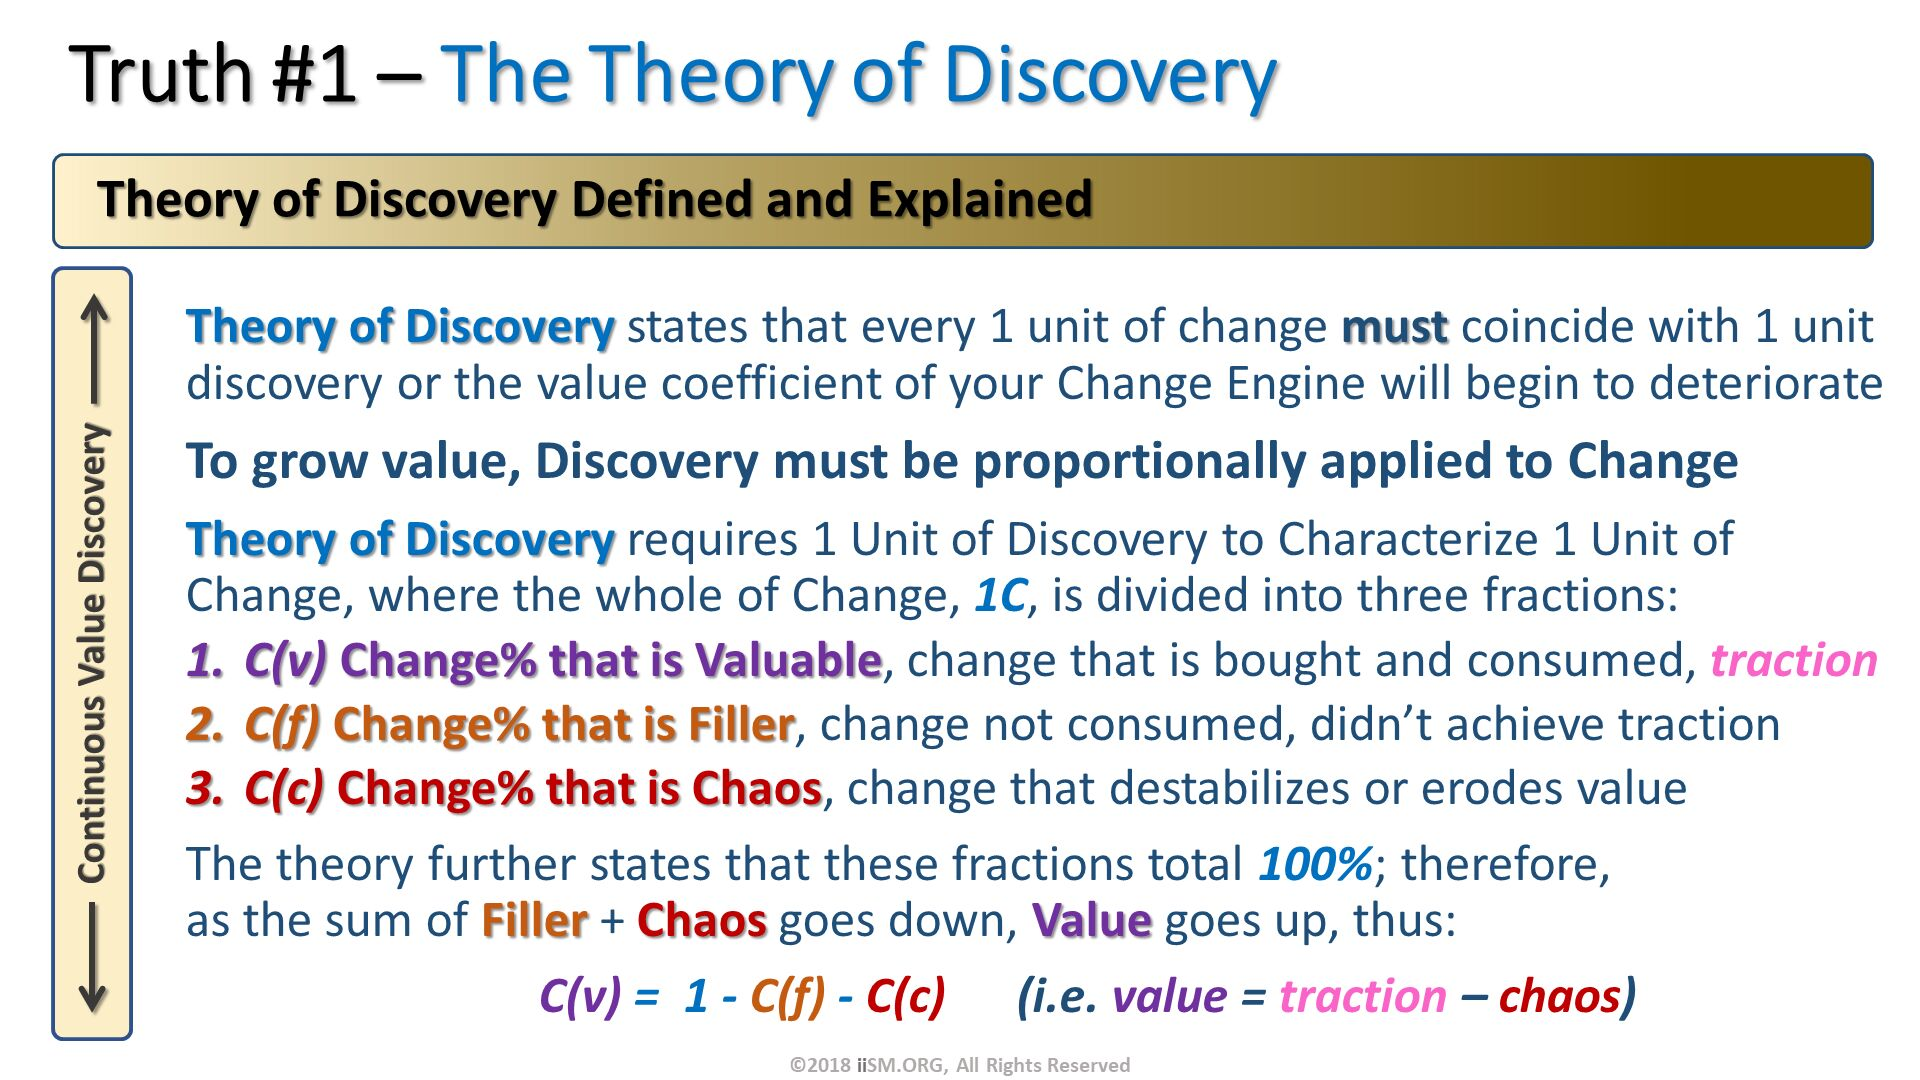 Truth #1 – The Theory of Discovery. Theory of Discovery states that every 1 unit of change must coincide with 1 unit discovery or the value coefficient of your Change Engine will begin to deteriorate To grow value, Discovery must be proportionally applied to Change Theory of Discovery requires 1 Unit of Discovery to Characterize 1 Unit of Change, where the whole of Change, 1C, is divided into three fractions: C(v) Change% that is Valuable, change that is bought and consumed, traction C(f) Change% that is Filler, change not consumed, didn't achieve traction C(c) Change% that is Chaos, change that destabilizes or erodes value The theory further states that these fractions total 100%; therefore, as the sum of Filler + Chaos goes down, Value goes up, thus:                               C(v) =  1 - C(f) - C(c)      (i.e. value = traction – chaos).   Theory of Discovery Defined and Explained. ©2018 iiSM.ORG, All Rights Reserved.